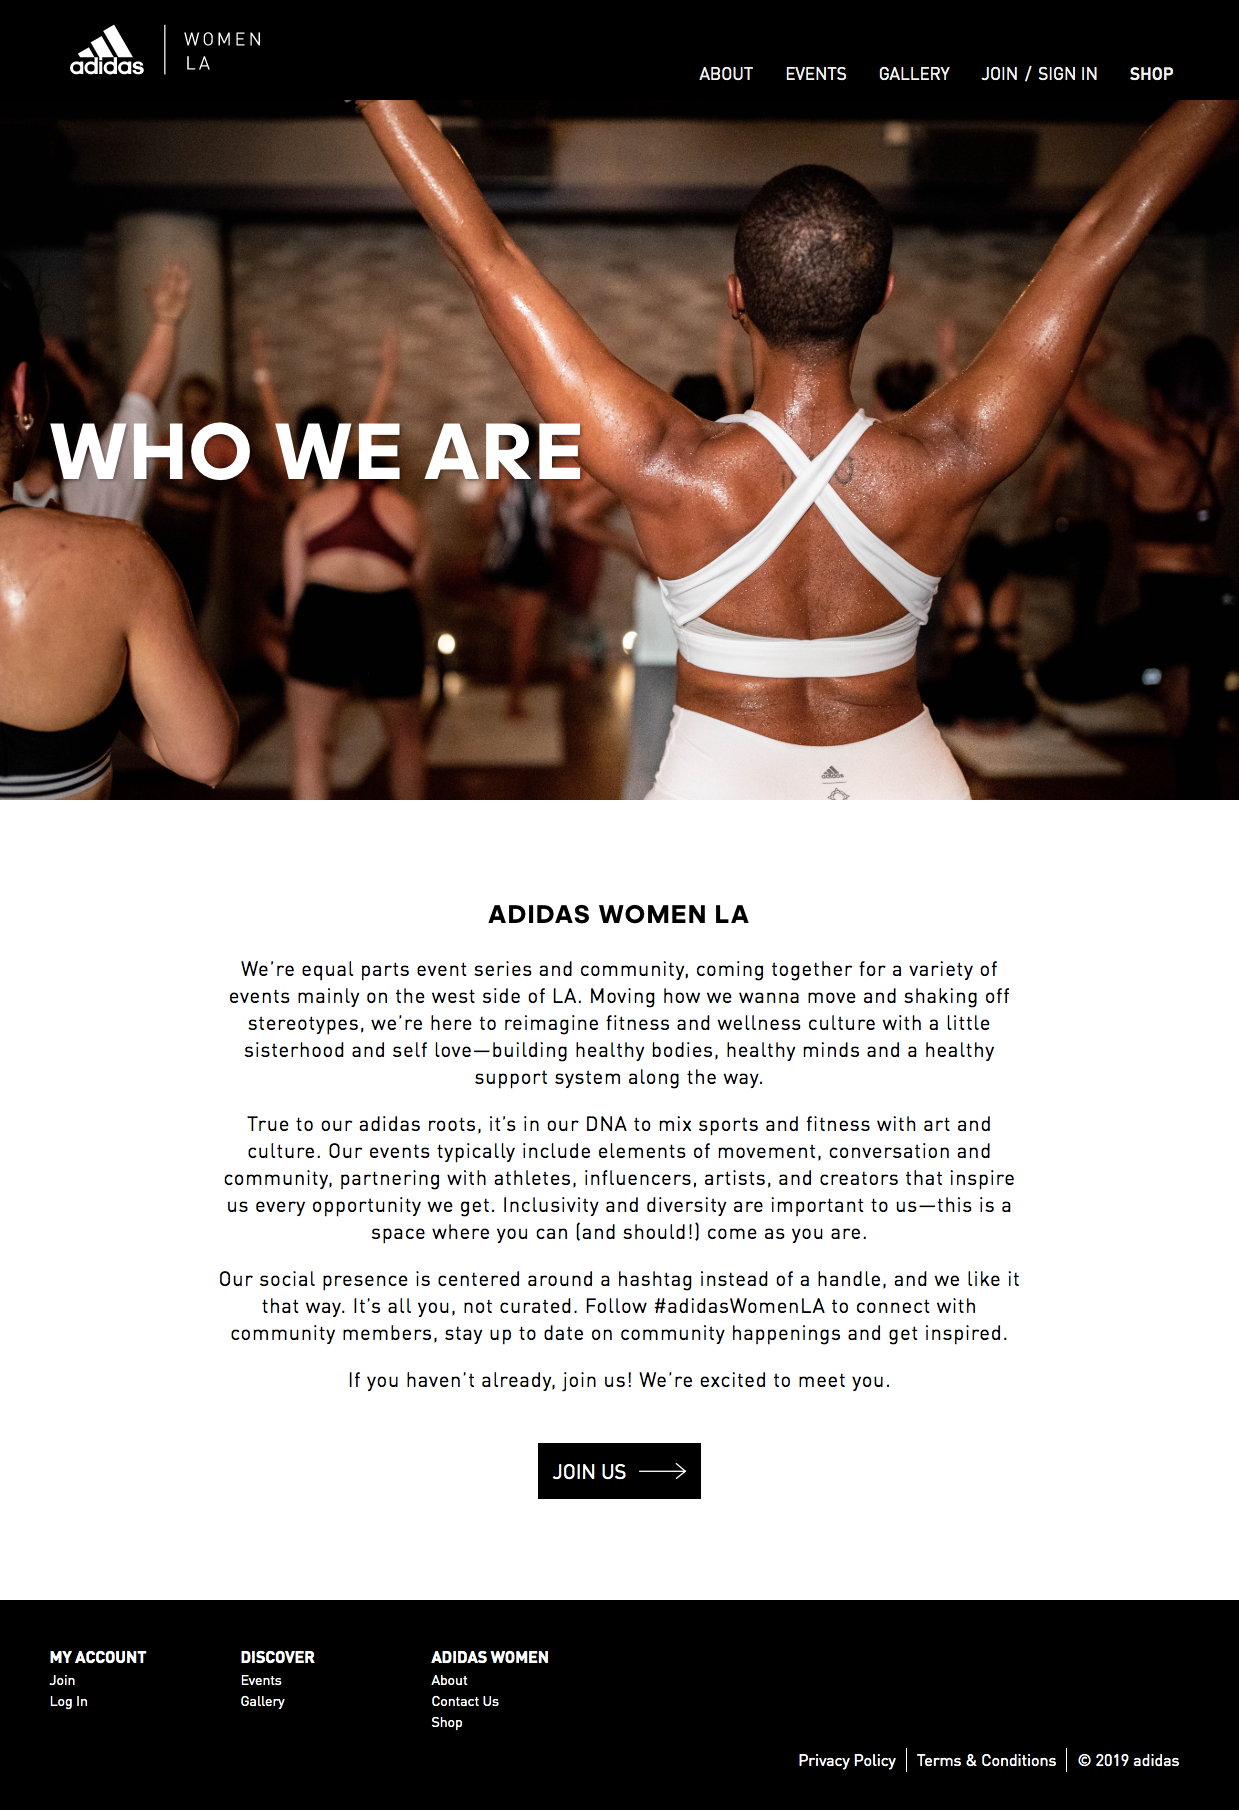 screencapture-adidaswomenla-about-2019-07-26-13_53_43.png